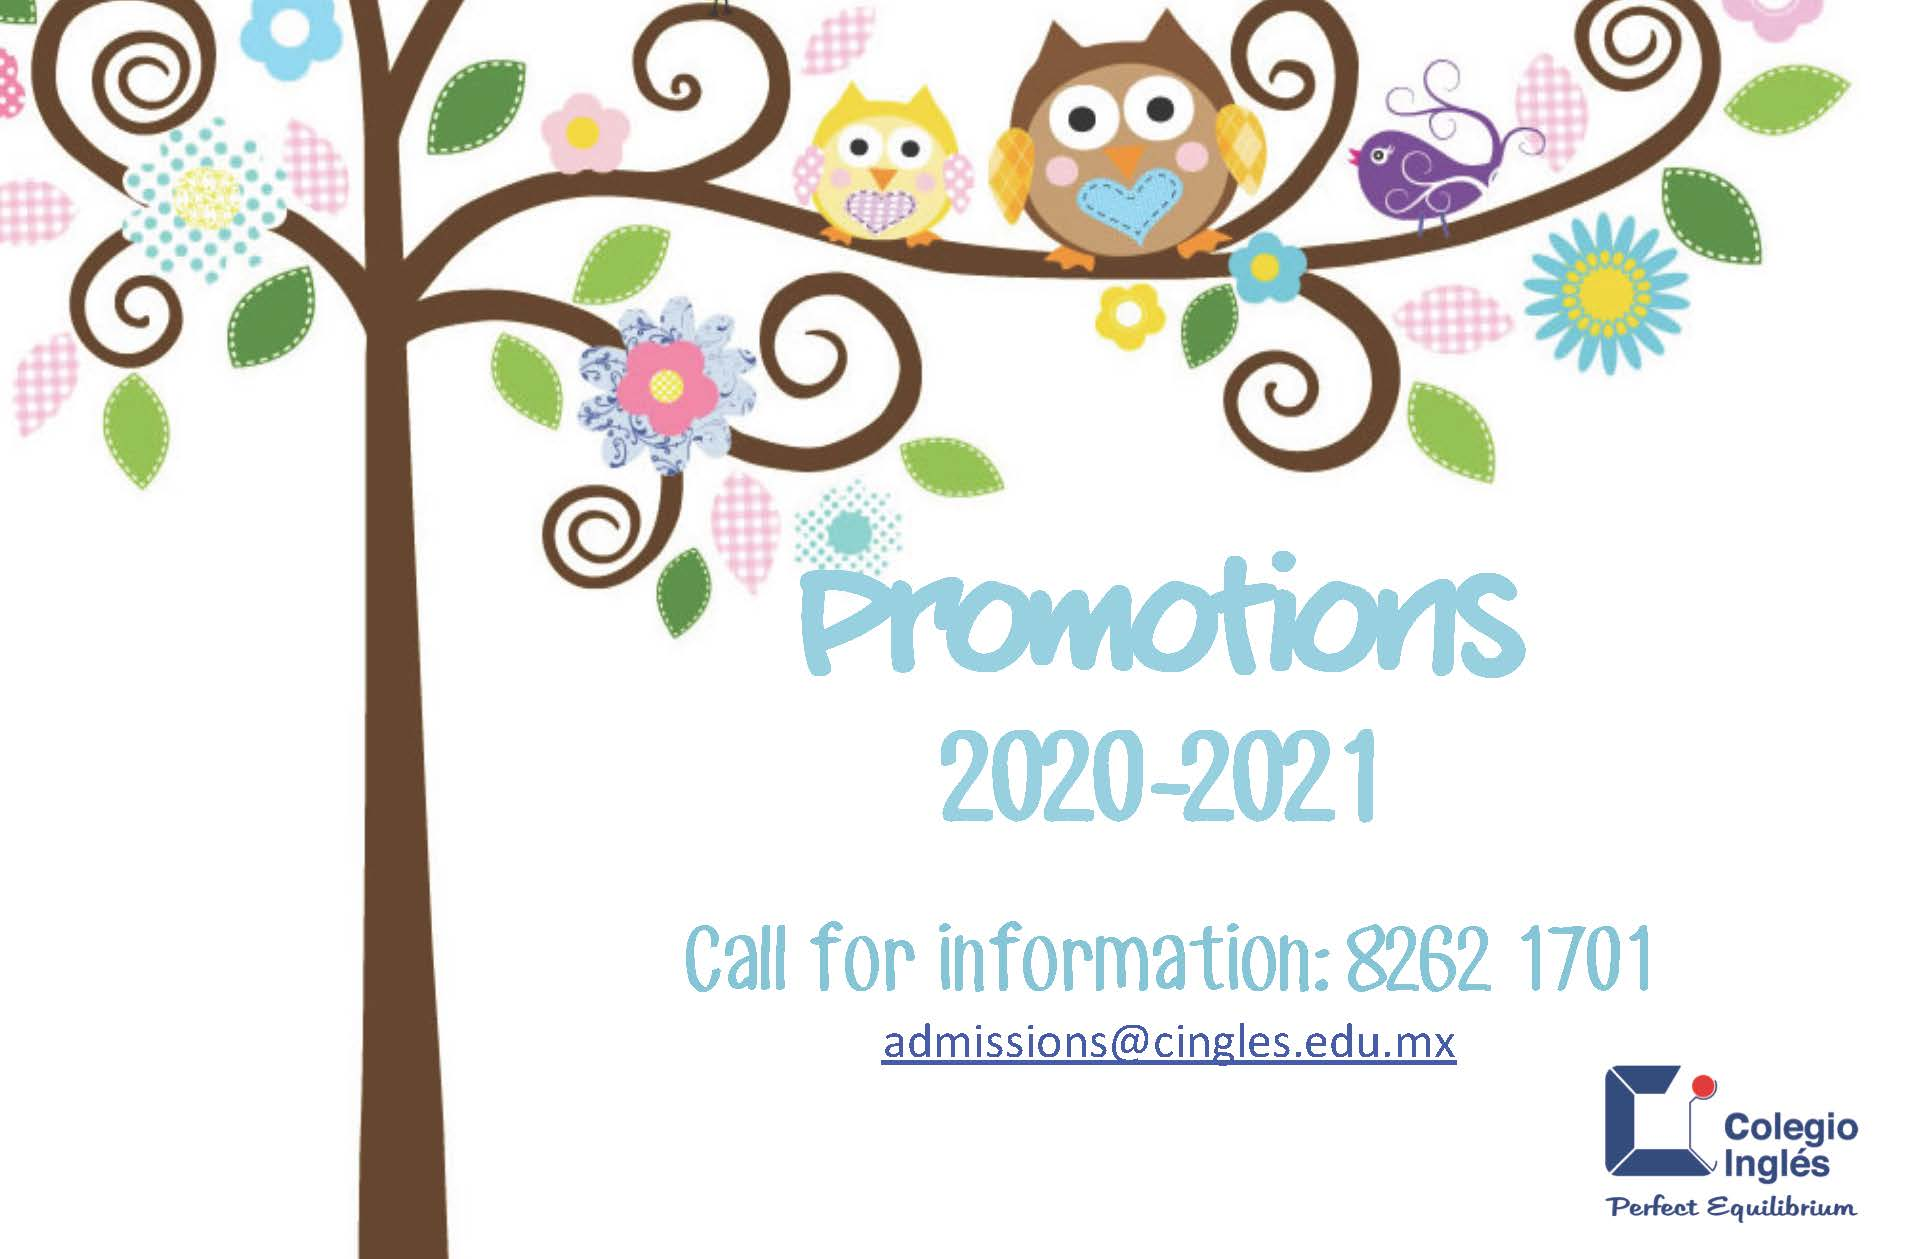 Promotions 20-21